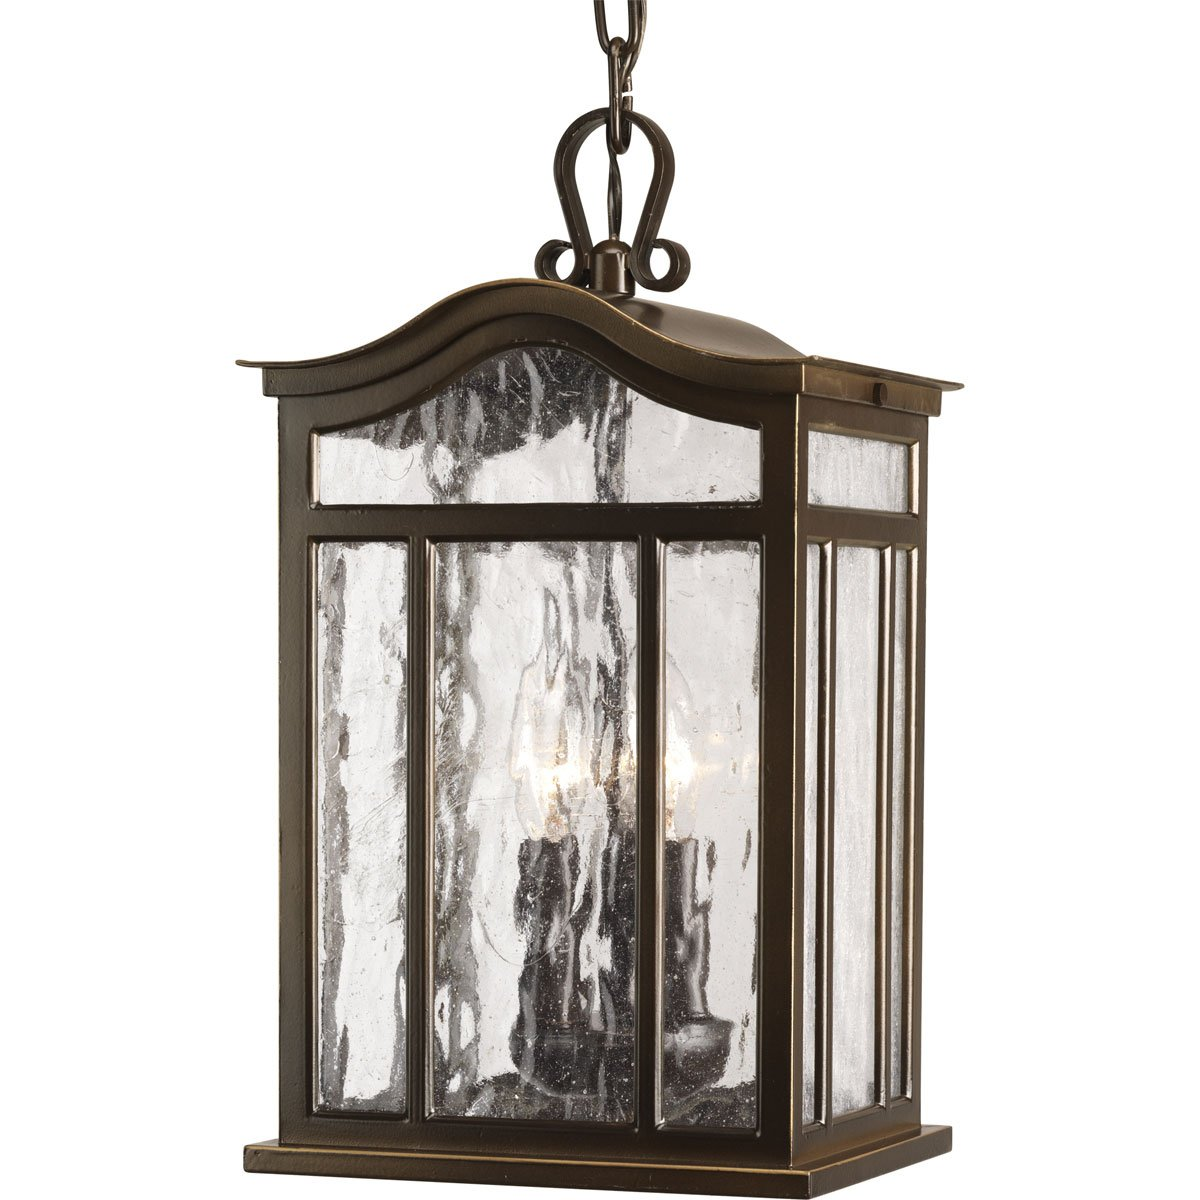 Progress Lighting P5502-108 3-Light Outdoor Hanging Lantern with Unique Arched Roof and Top Ribbon Scrolled Loops with Arching Arms, Oil Rubbed Bronze by Progress Lighting